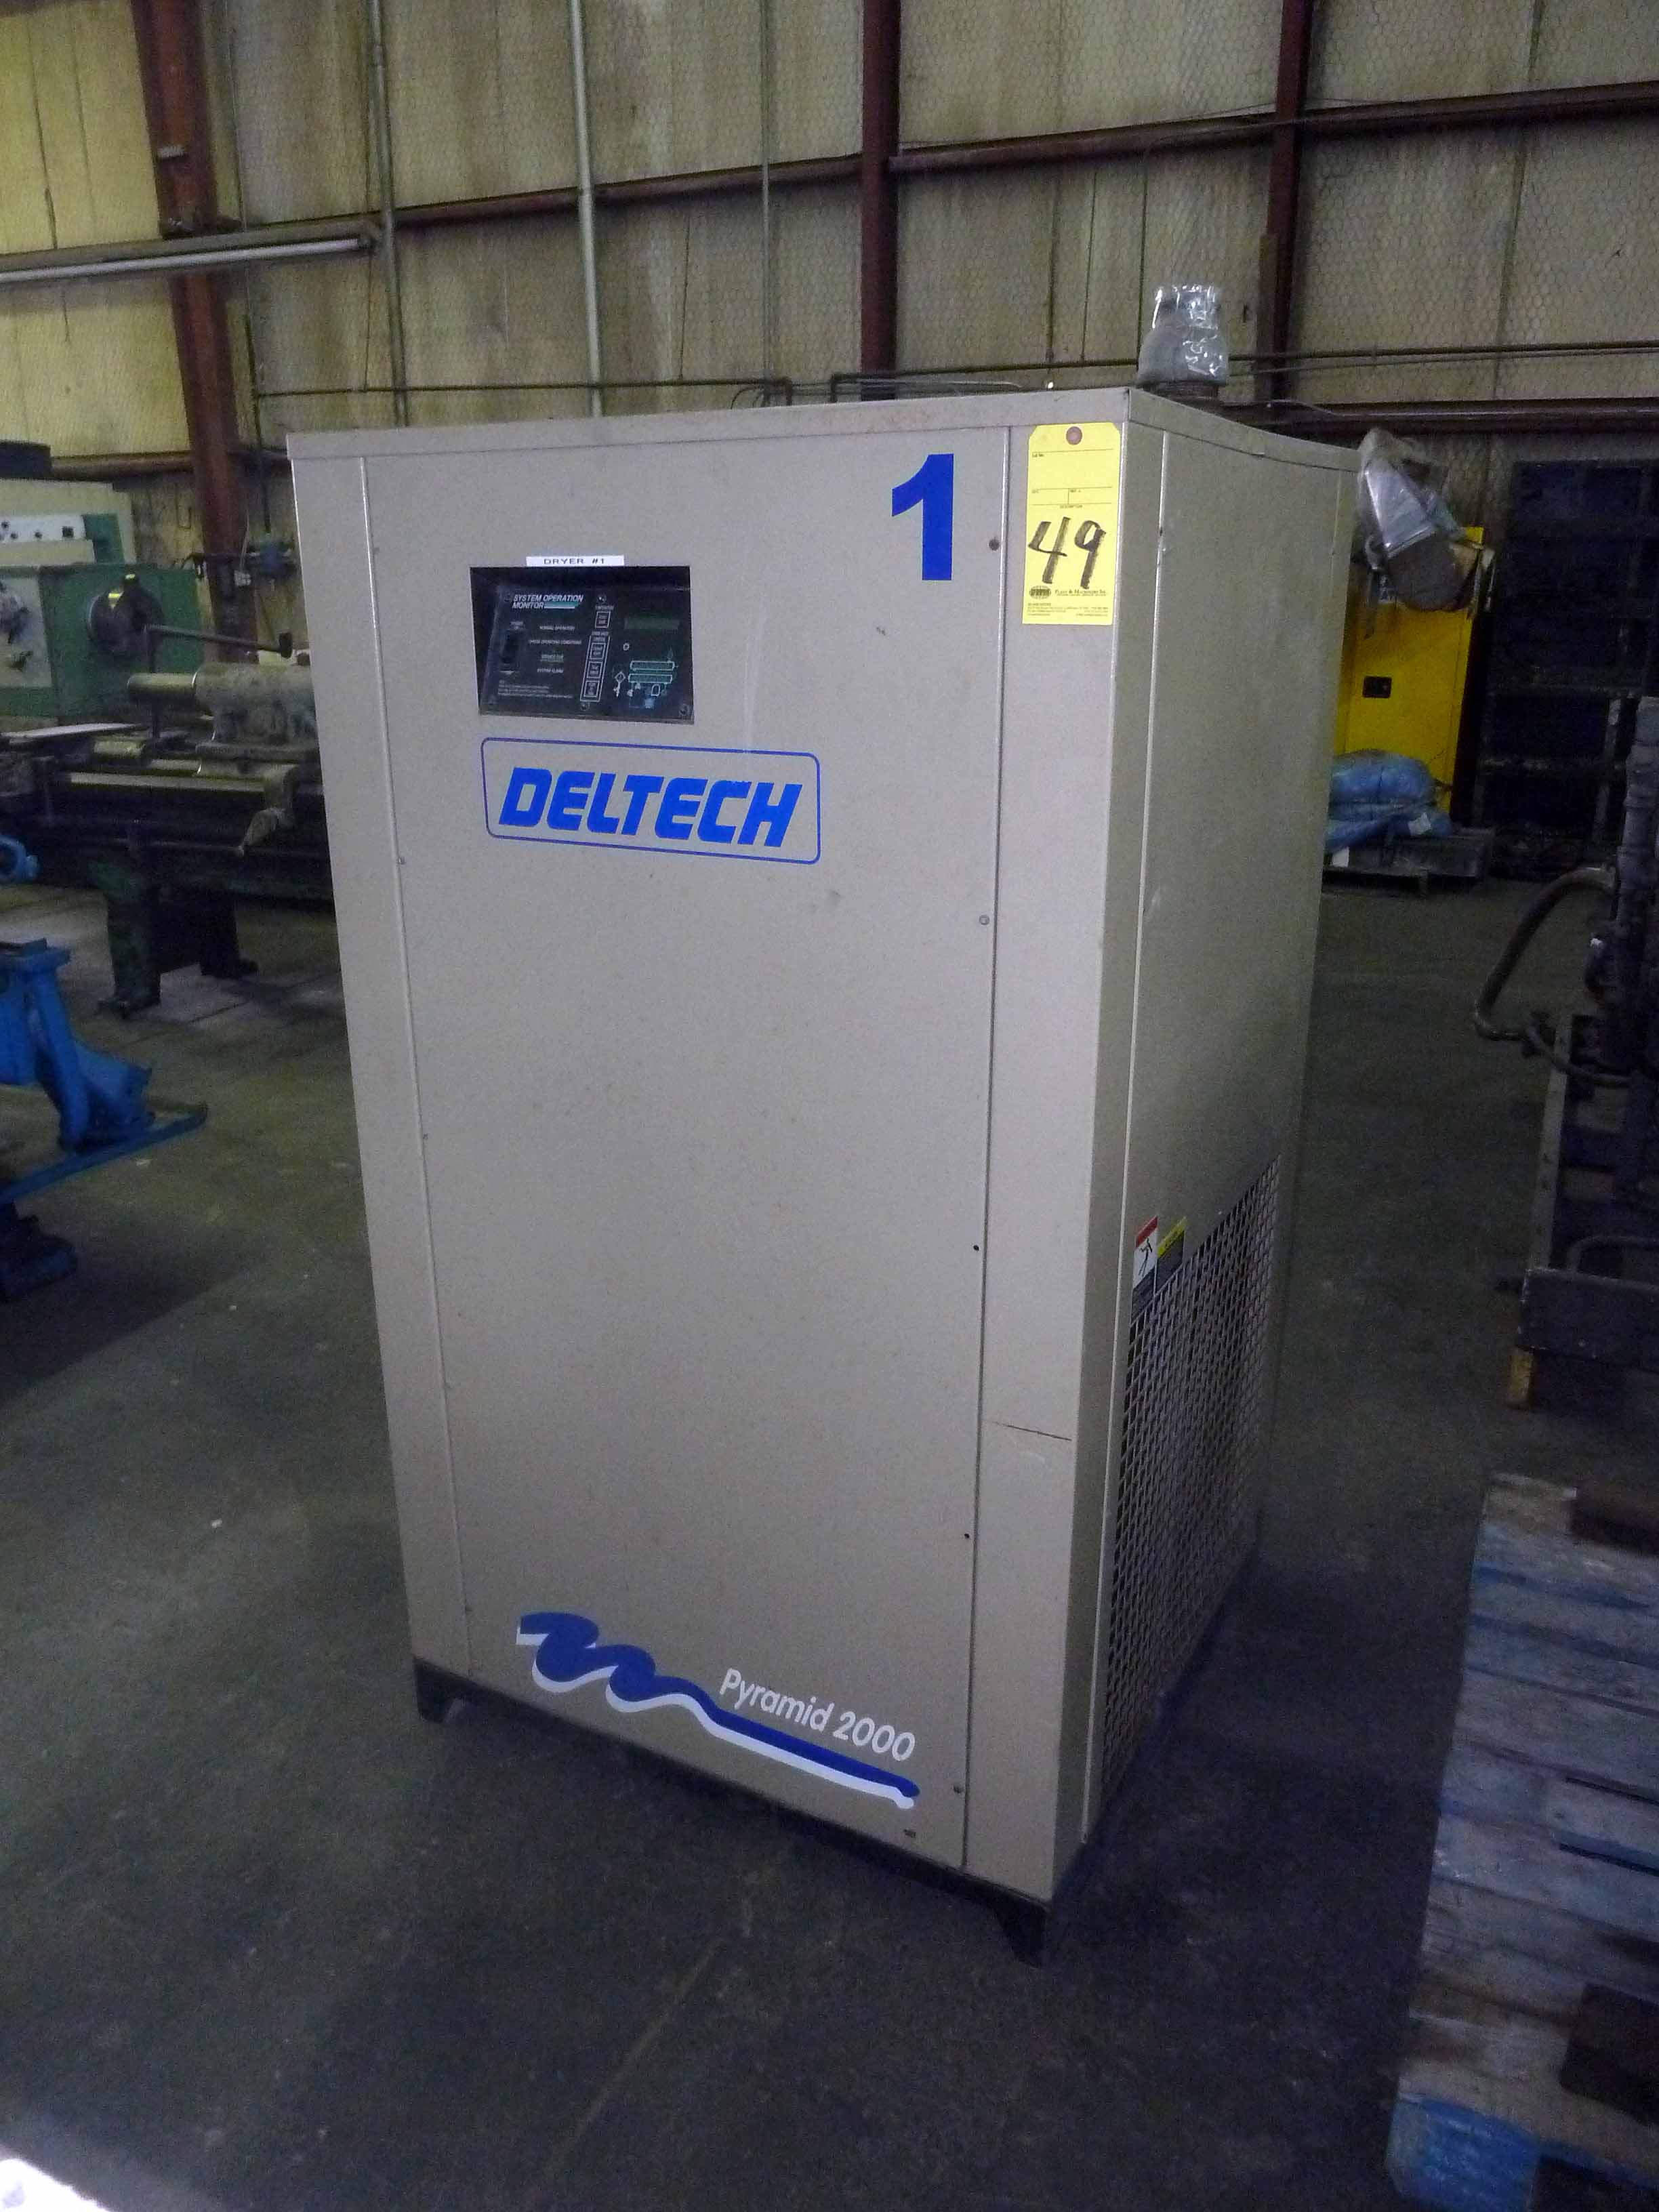 Lot 49 - AIR DRYER, DELTECH PYRAMID MDL. 2000